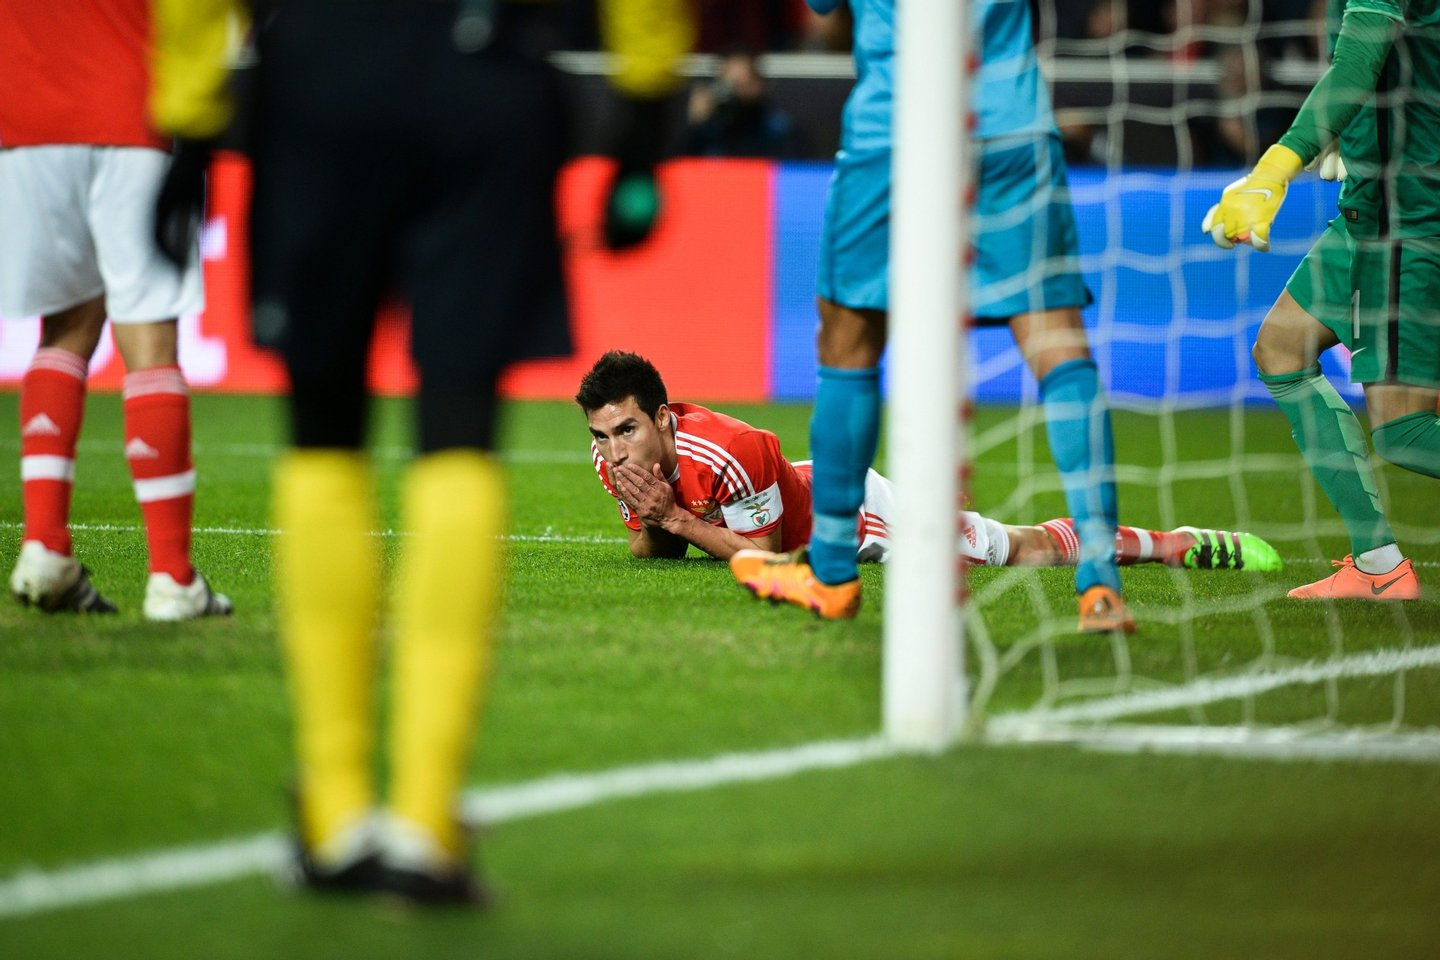 Benfica's Argentine midfielder Nicolas Gaitan lies on the field after a failed attempt on goal during the UEFA Champions League round of 16 football match SL Benfica vs FC Zenith Saint-Petersburg at the Luz stadium in Lisbon on February 16, 2016. / AFP / PATRICIA DE MELO MOREIRA (Photo credit should read PATRICIA DE MELO MOREIRA/AFP/Getty Images)